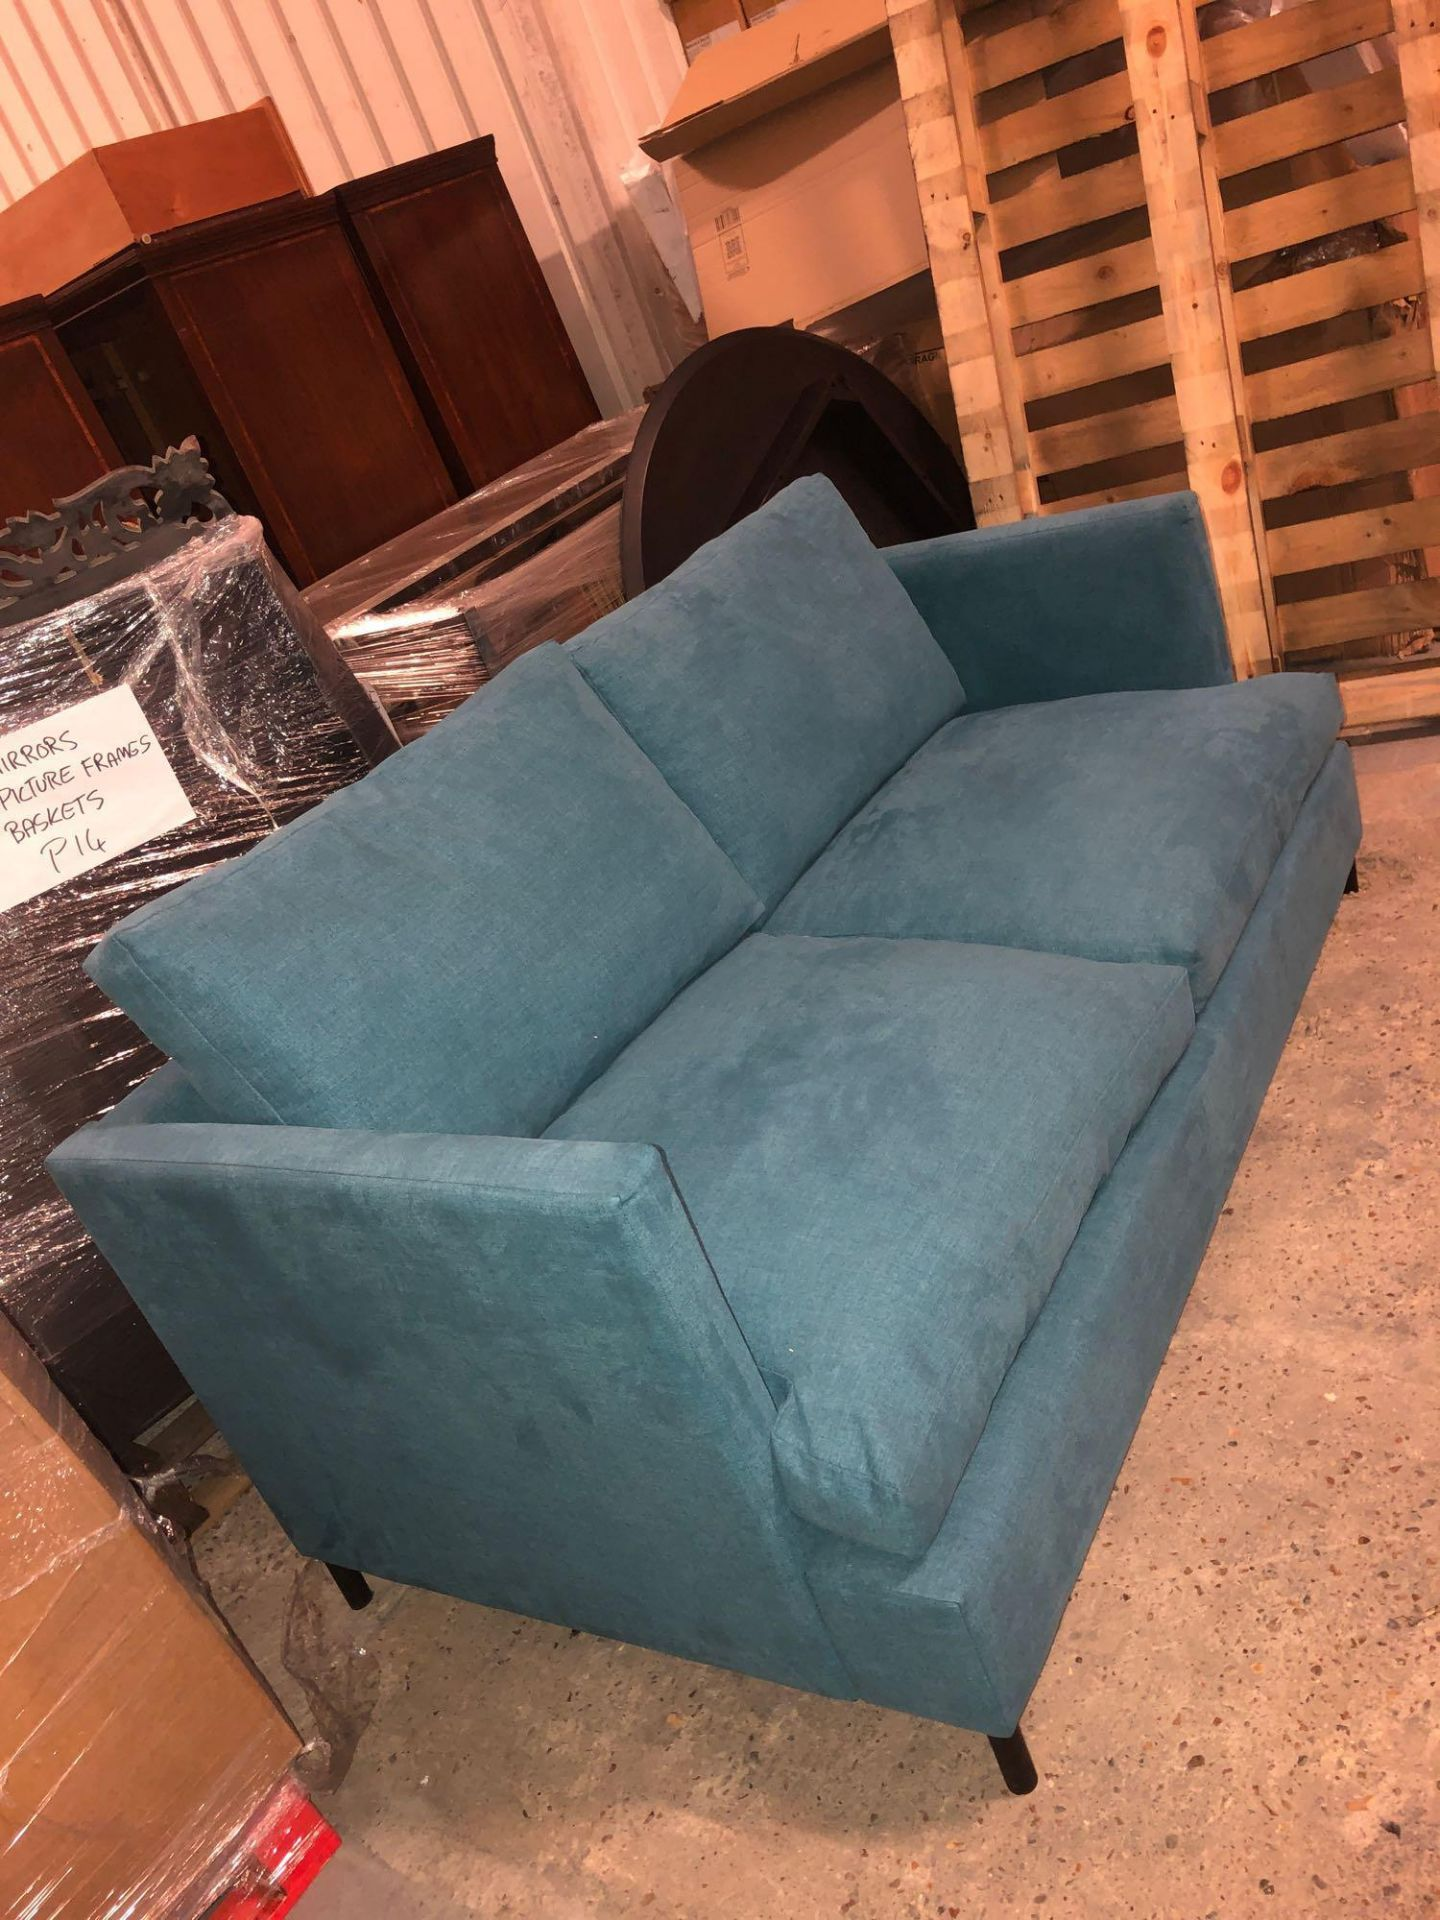 Weyburn 3 Seater Sofa Bed Turquoise The Weyburn 3 Seater Sofabed Is A Both Versatile And Stylish